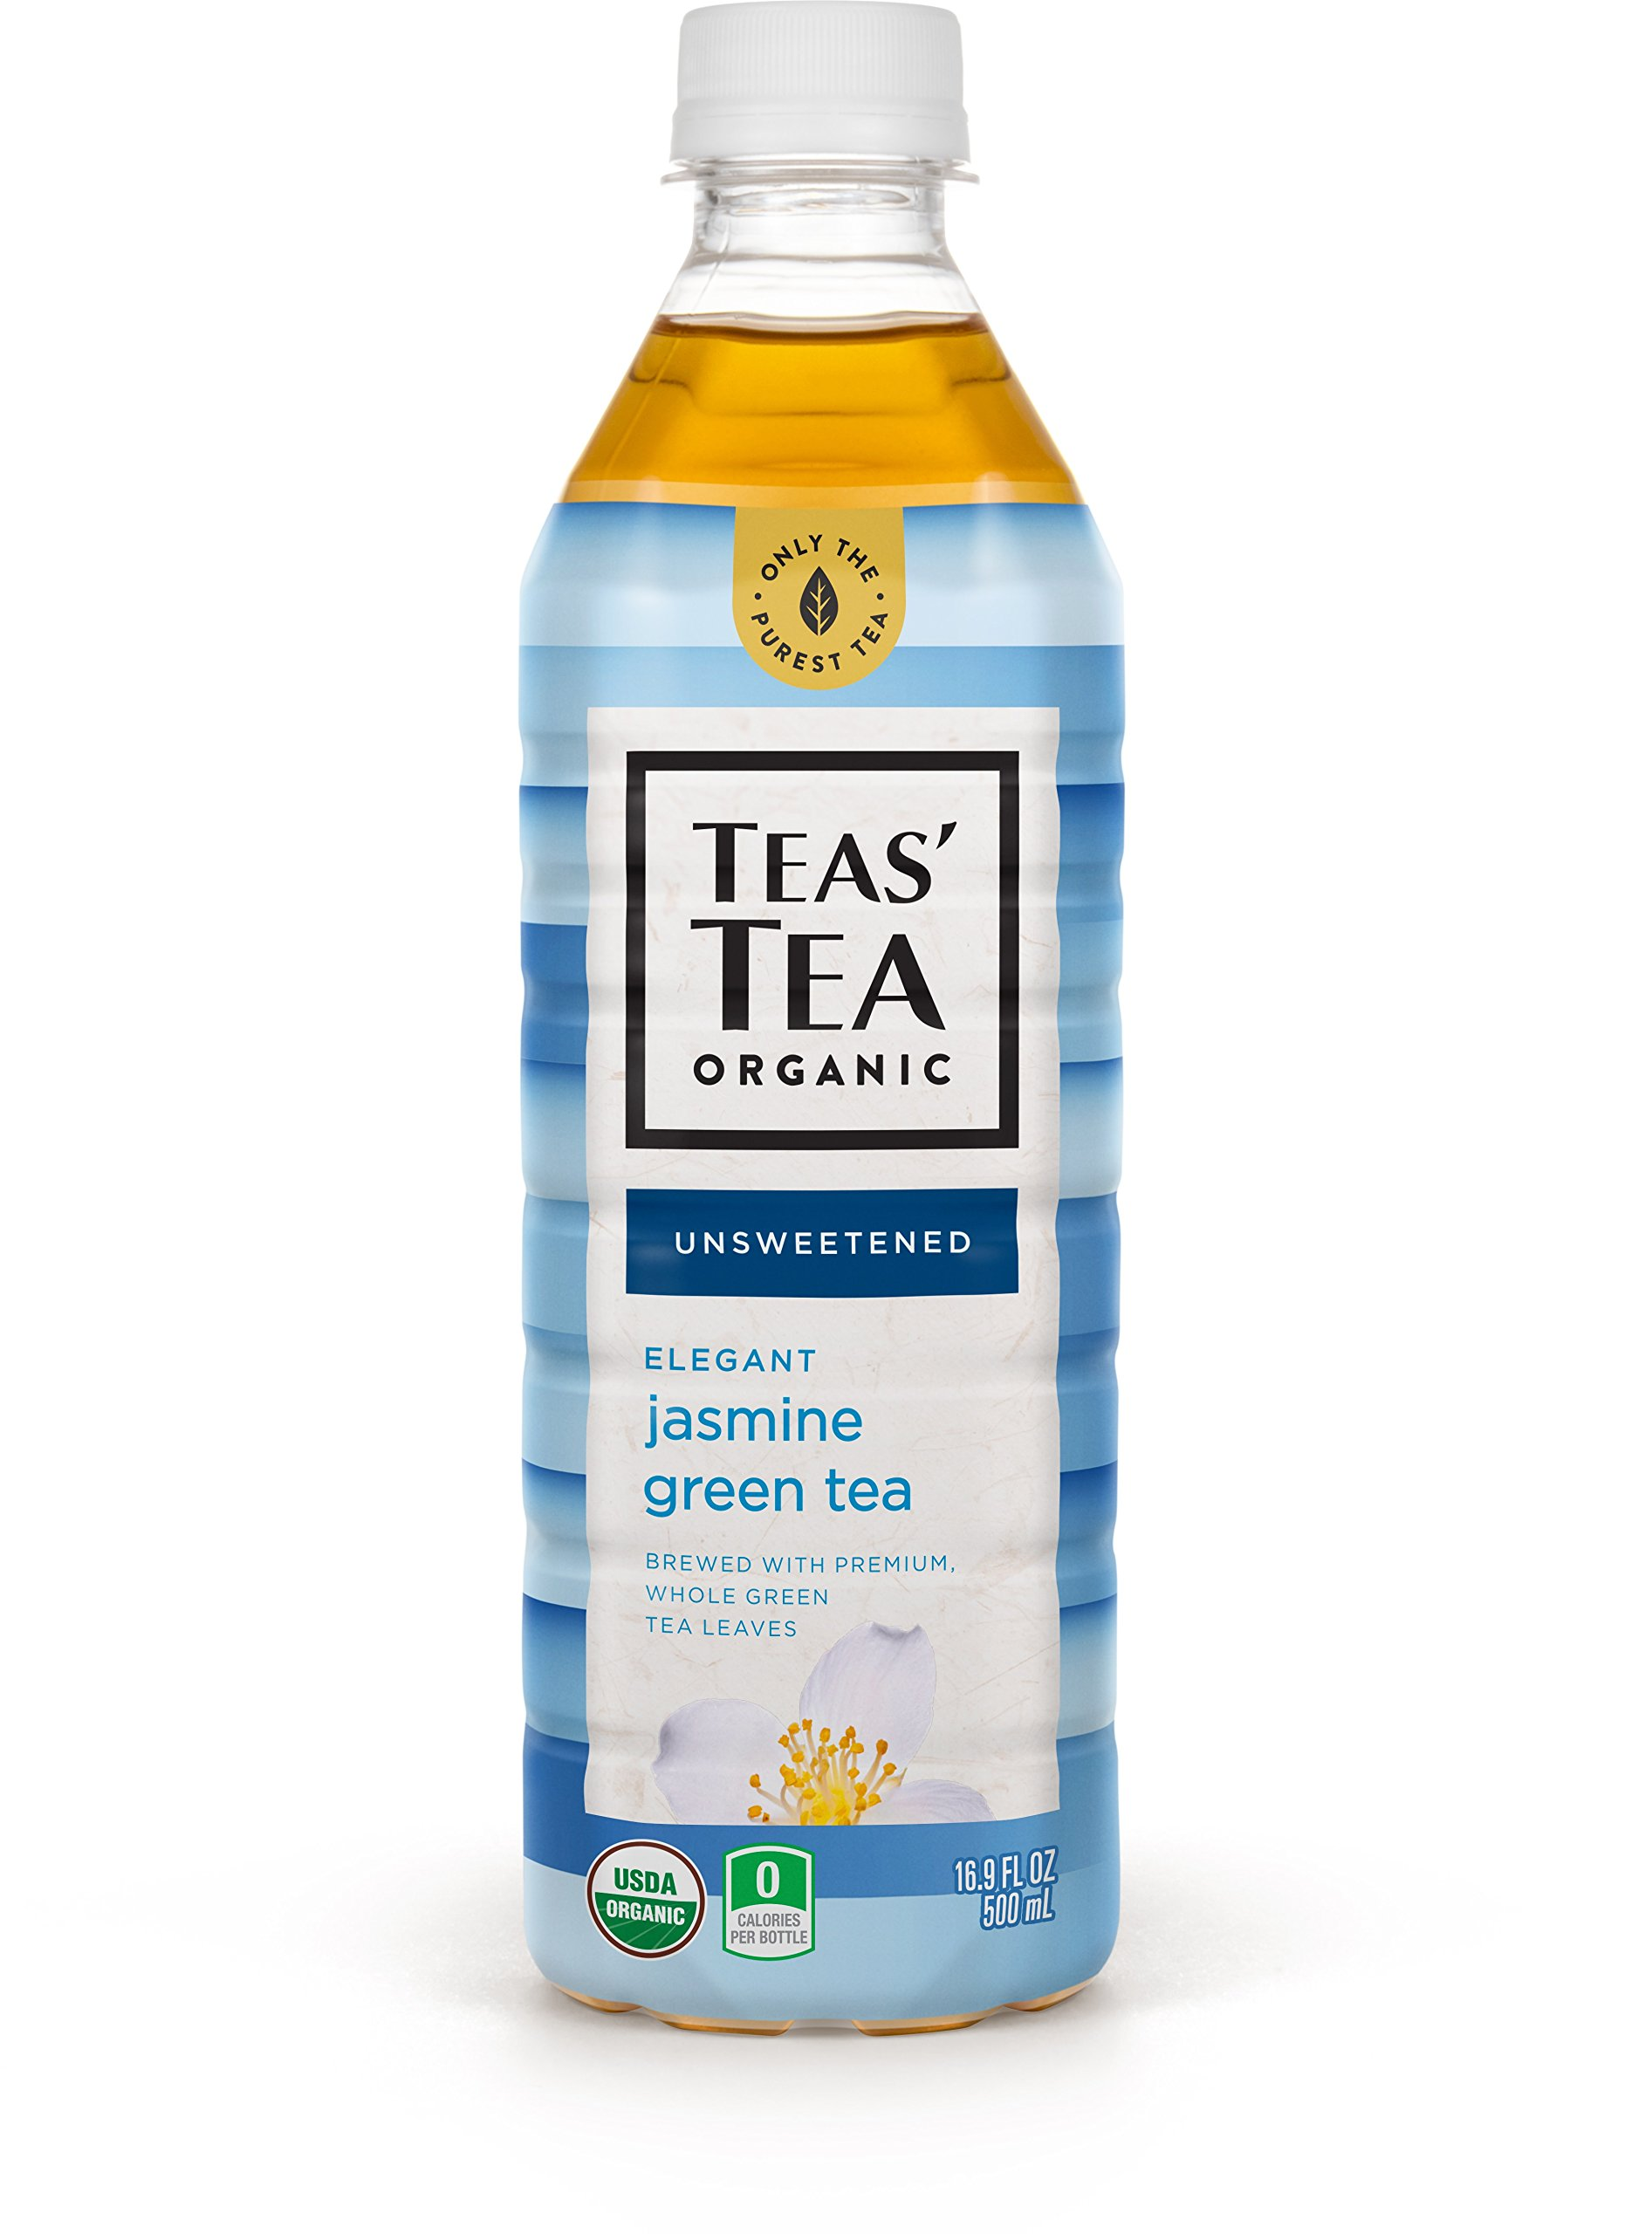 Teas' Tea Unsweetened Jasmine Green Tea, 16.9 Ounce (Pack of 12), Organic, Zero Calories, No Sugars, No Artificial Sweeteners, Antioxidant Rich, High in Vitamin C